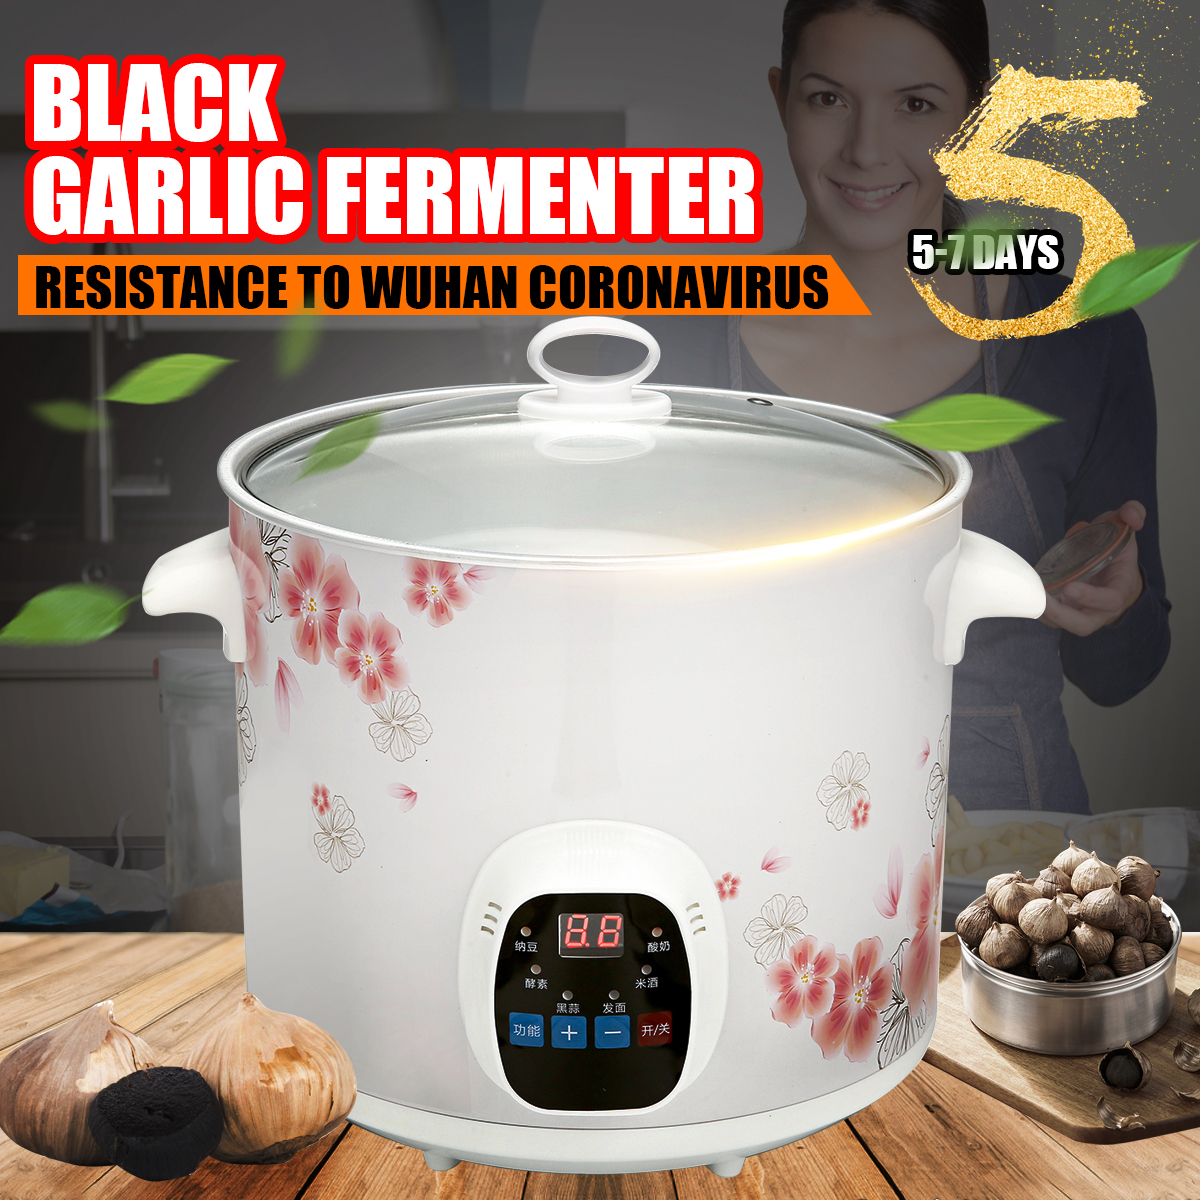 6L Black Garlic Fermenter Multifunction Black Garlic Ferment Box Smart Fermentation Machine Home Kitchen Garlics Maker Cooker